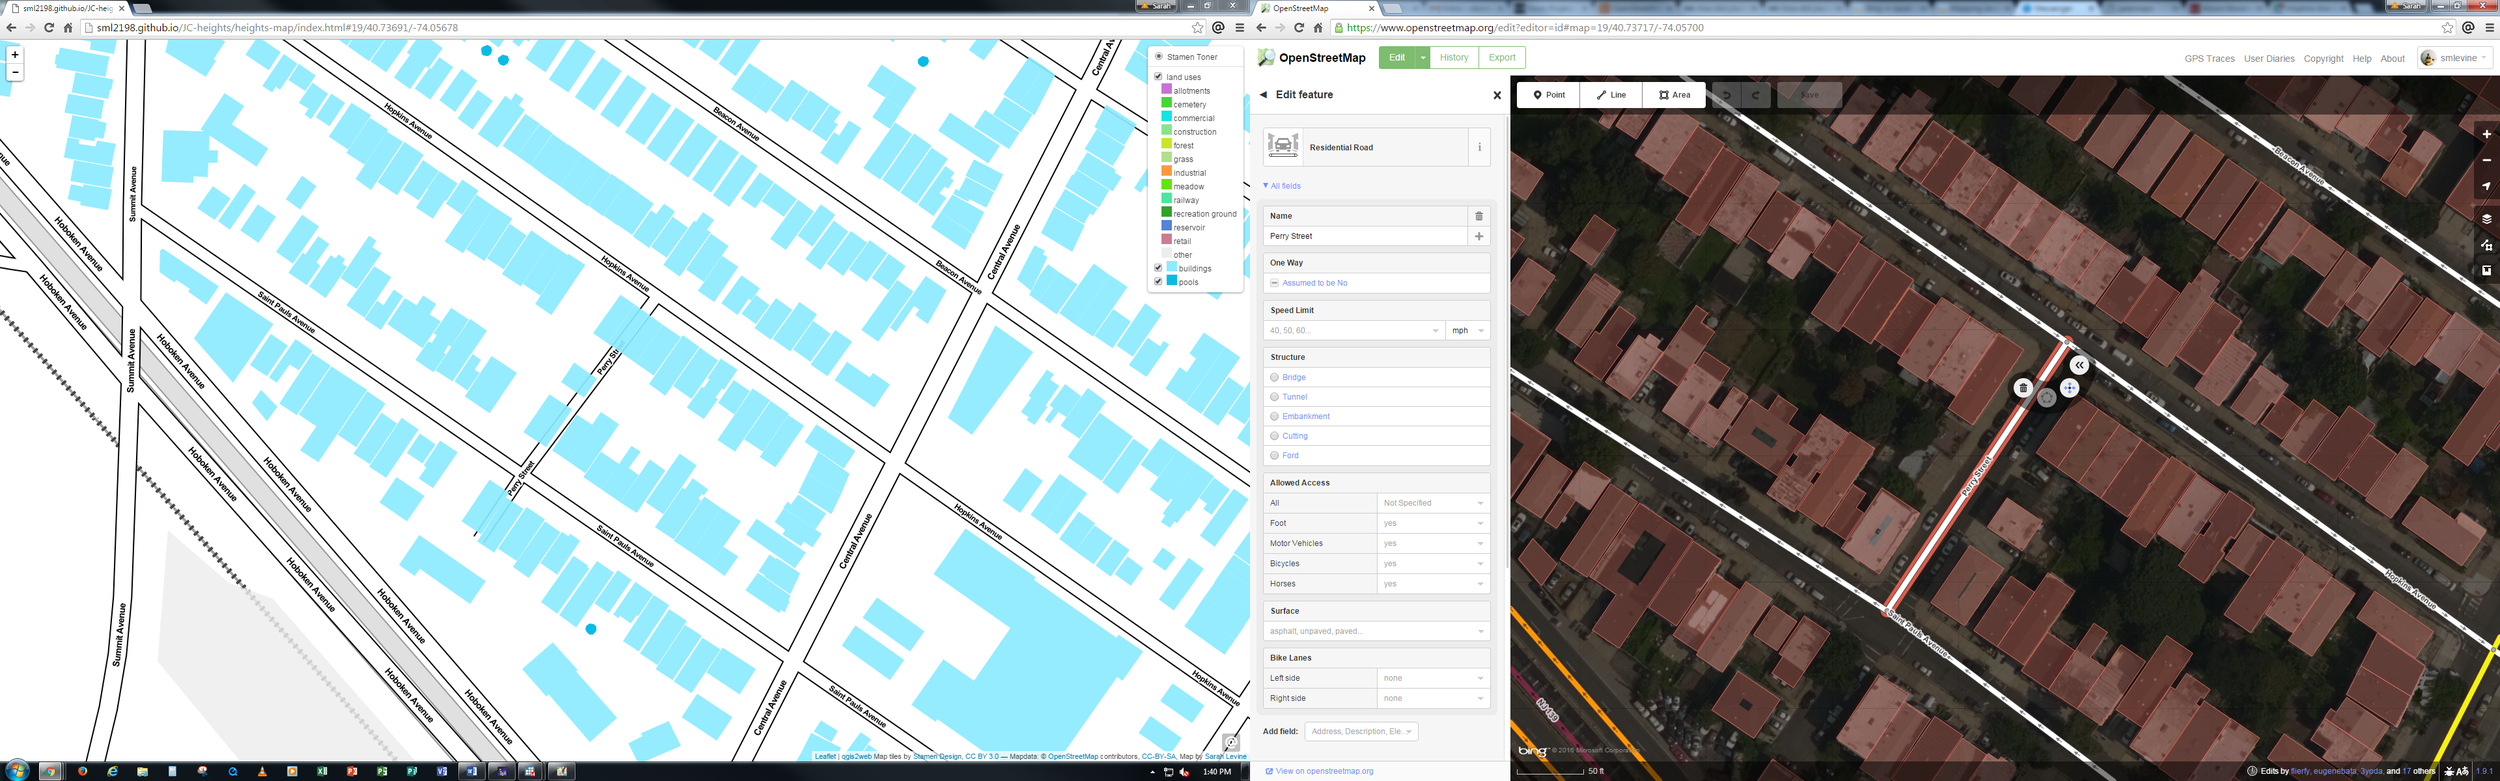 Yes, my wide double screens are the bomb. On the left is a mockup of the map. On the right is the same area zoomed in on with the OSM id-editor. Perry Street is selected.